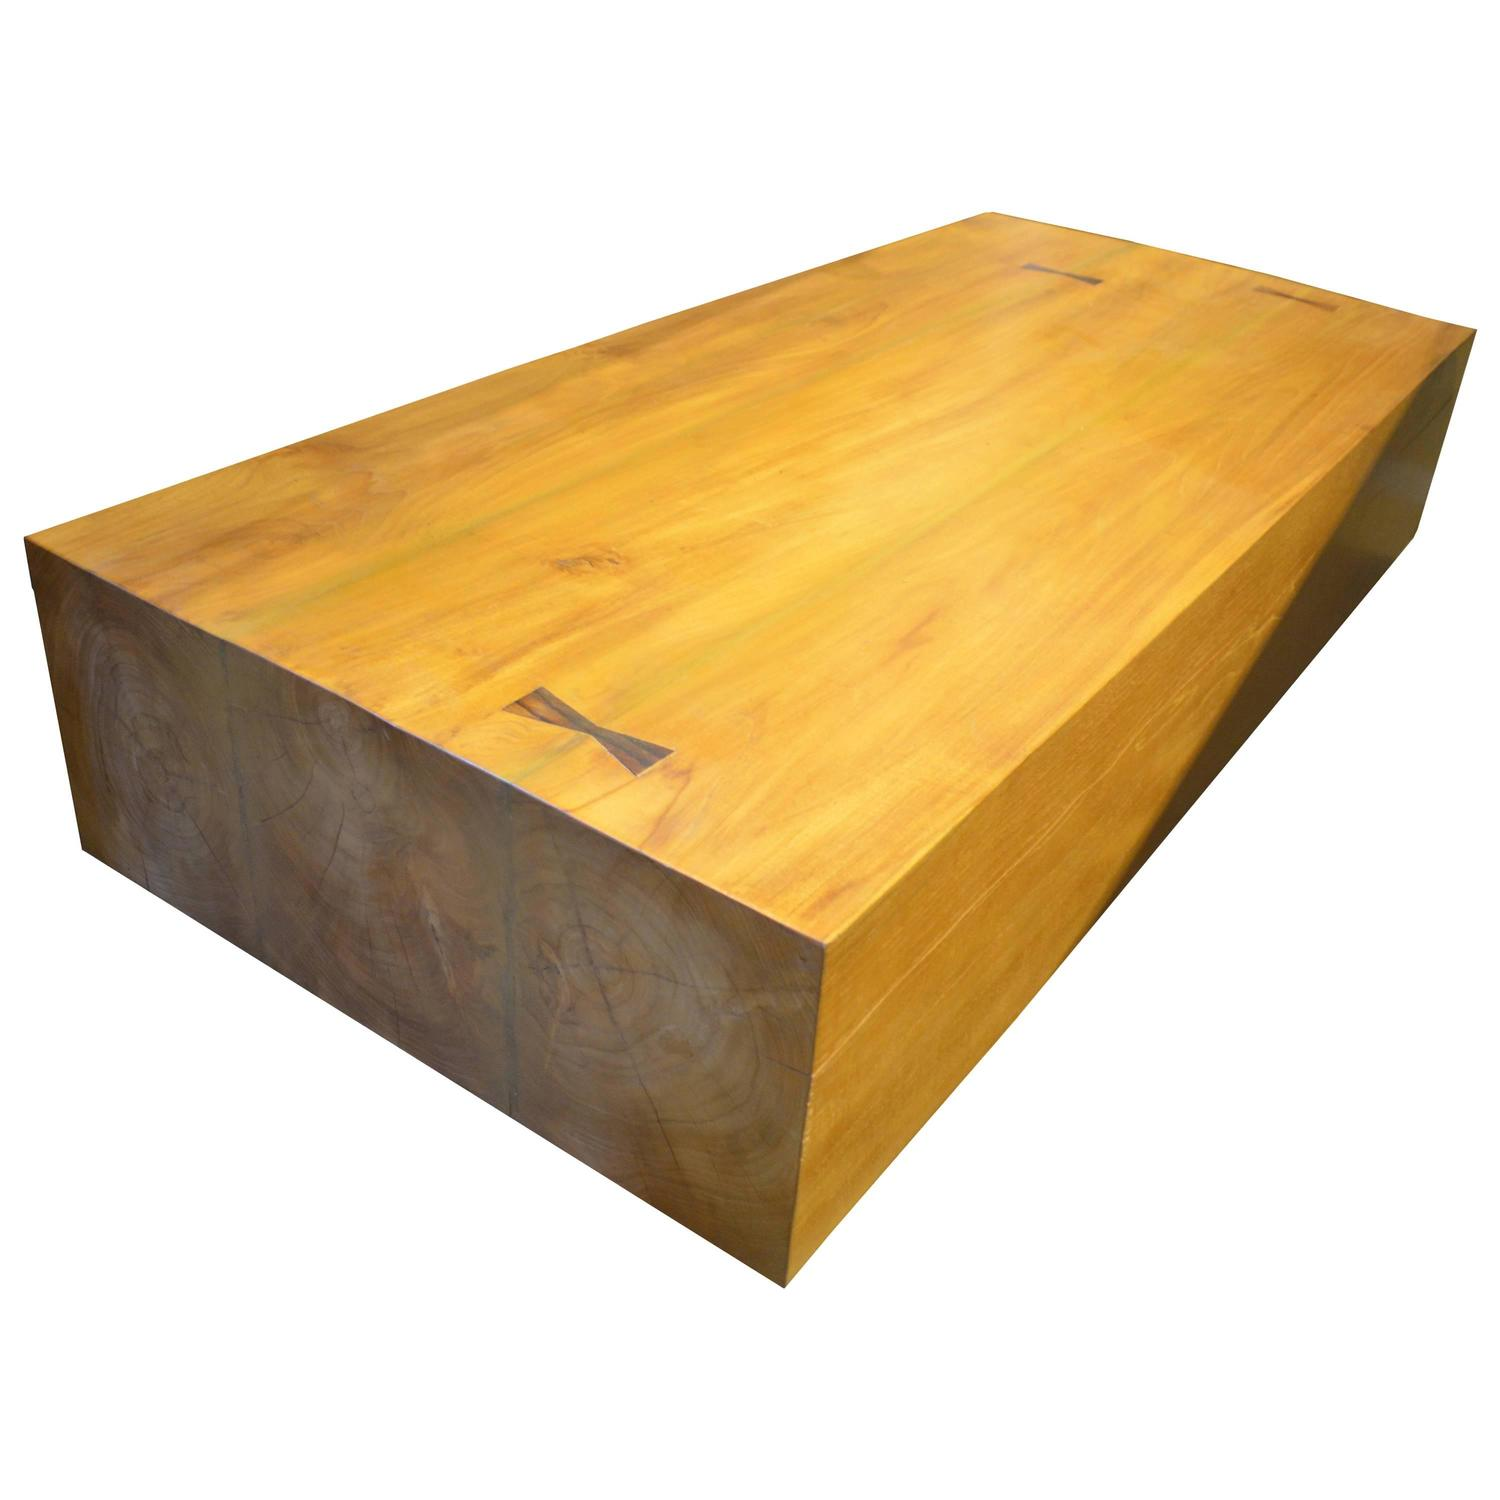 Modern teak wood coffee table for sale at 1stdibs for Modern coffee table for sale